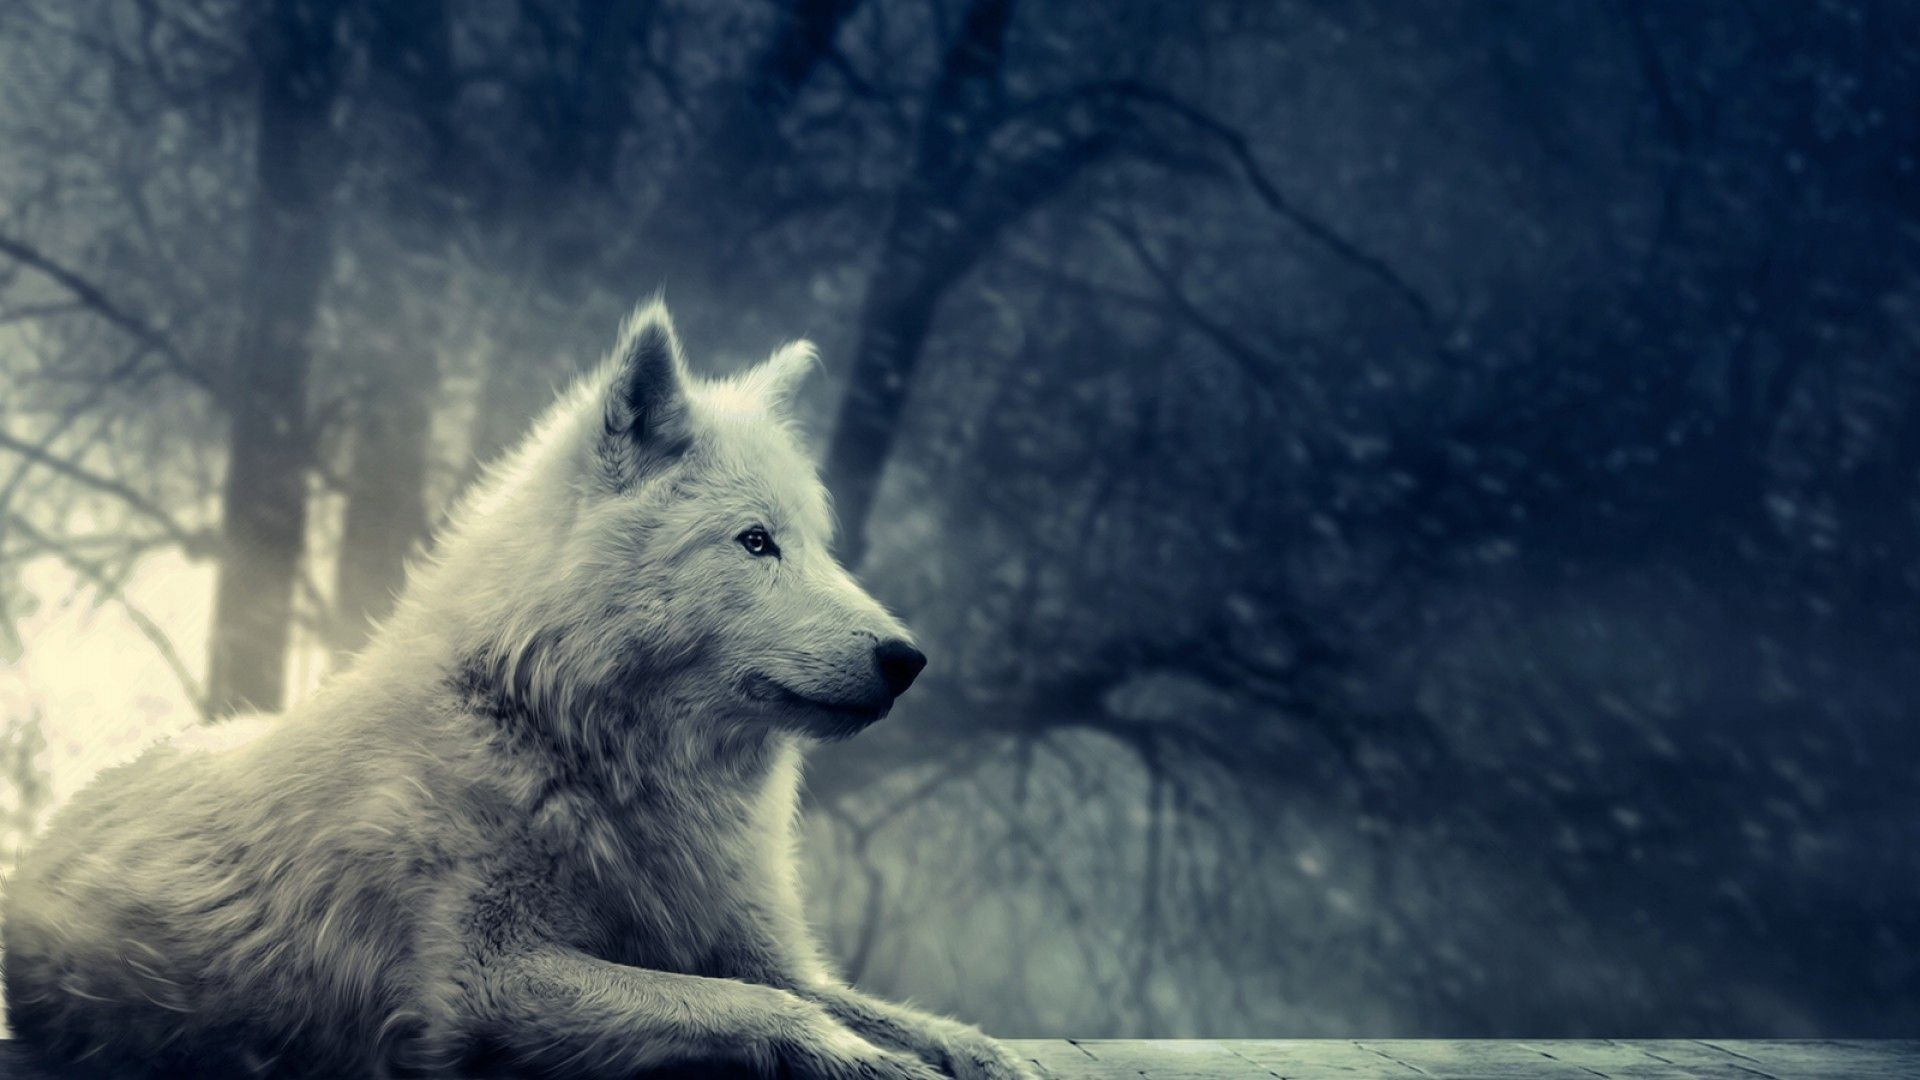 Res: 1920x1080, Downlaod wolf new hd wallpapers for desktop uamp; pc Animited PICS  1920×1200